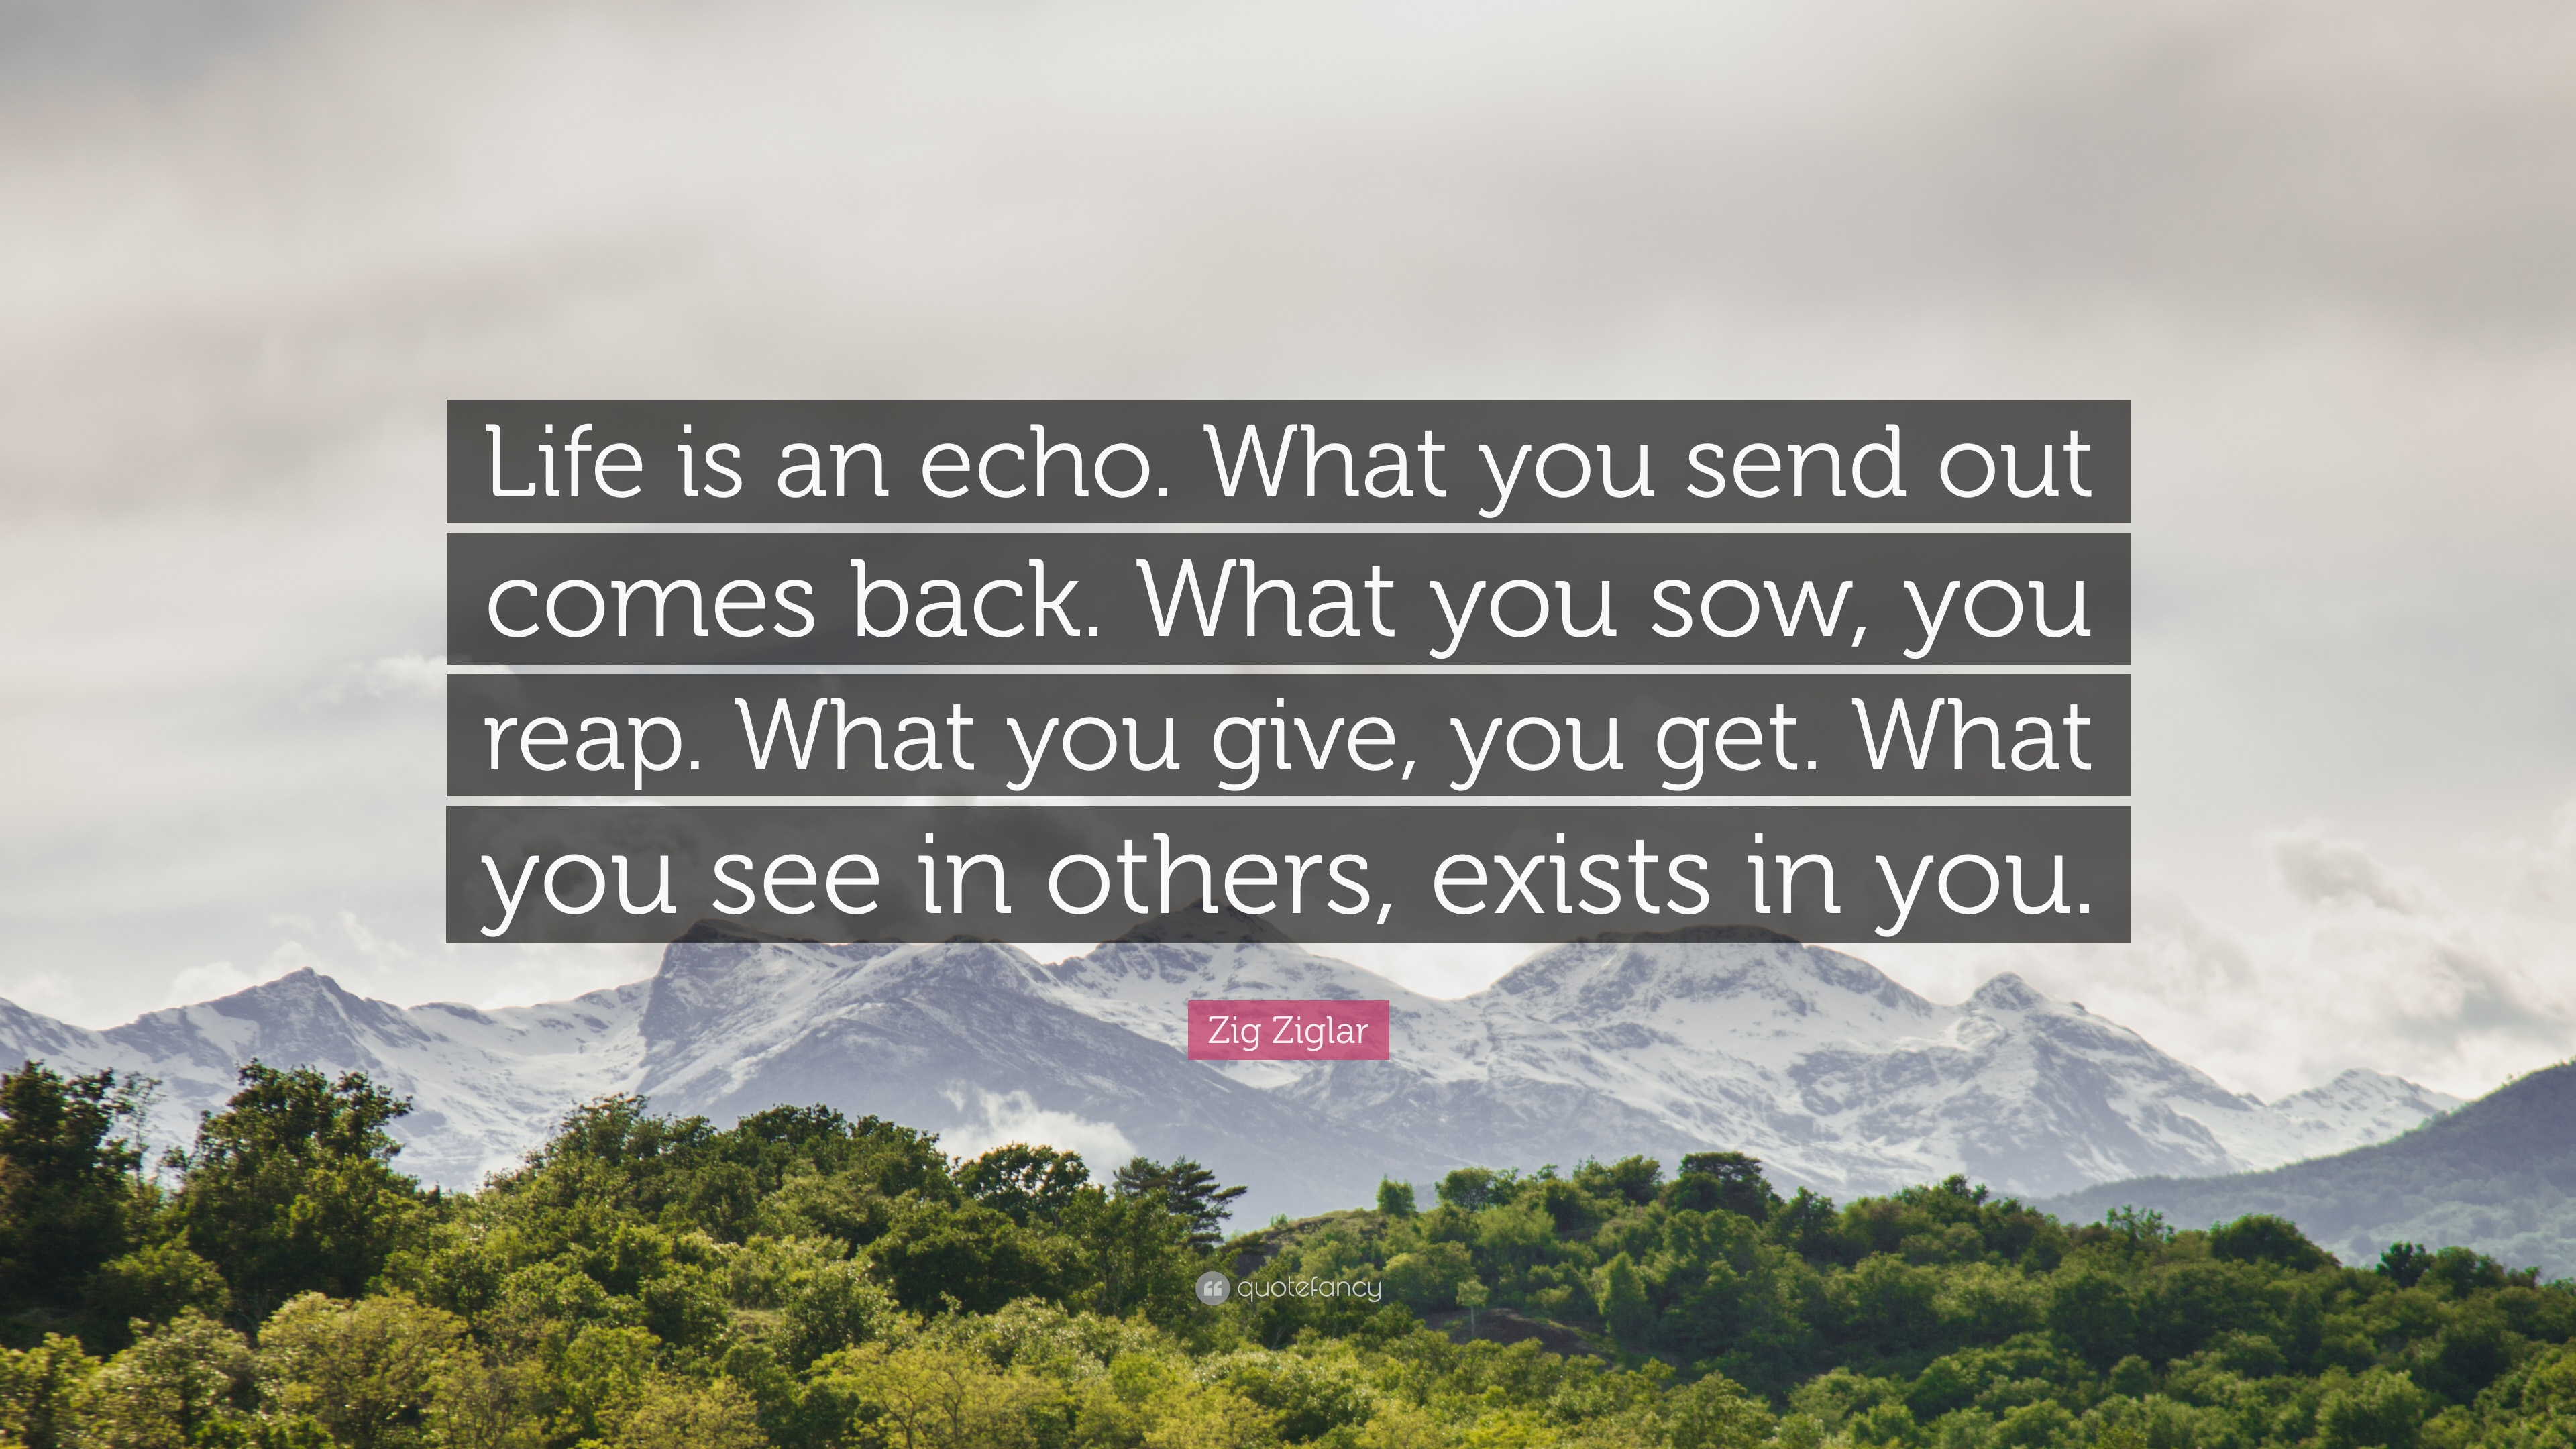 Marvelous Zig Ziglar Quote: U201cLife Is An Echo. What You Send Out Comes Back